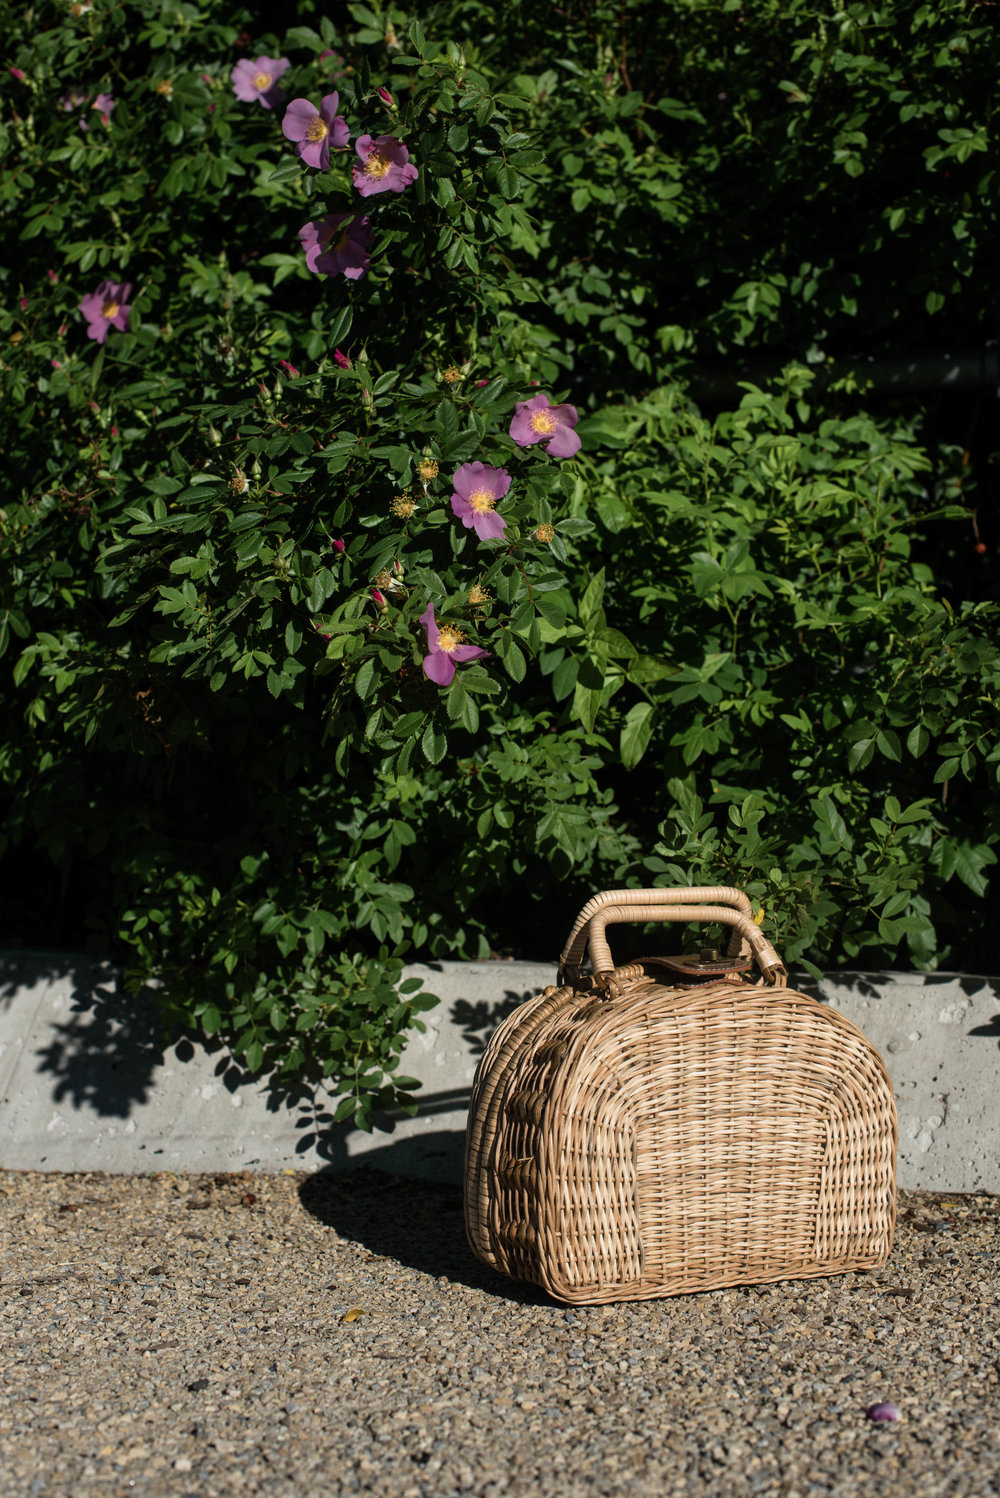 ROSE & IVY Journal Summer Bags for the Beach & City  with Kayu